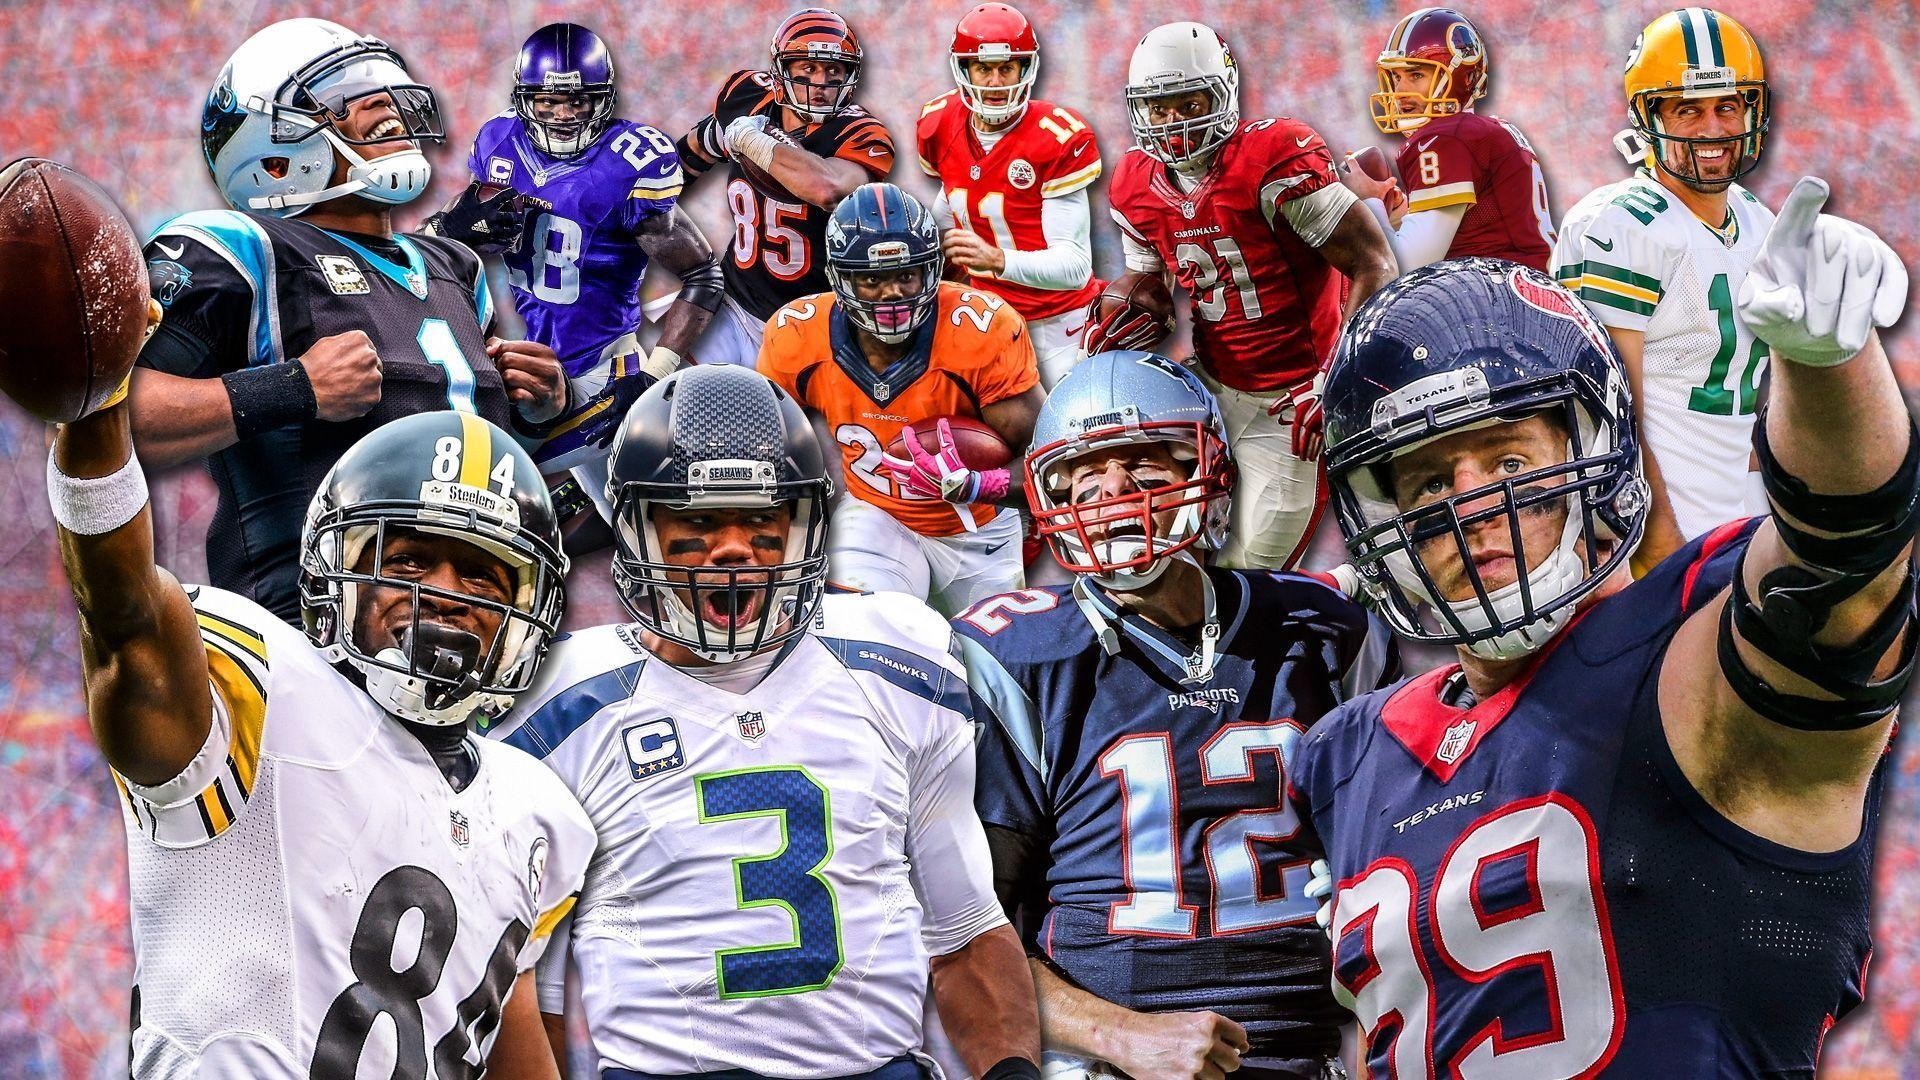 Nfl football players images